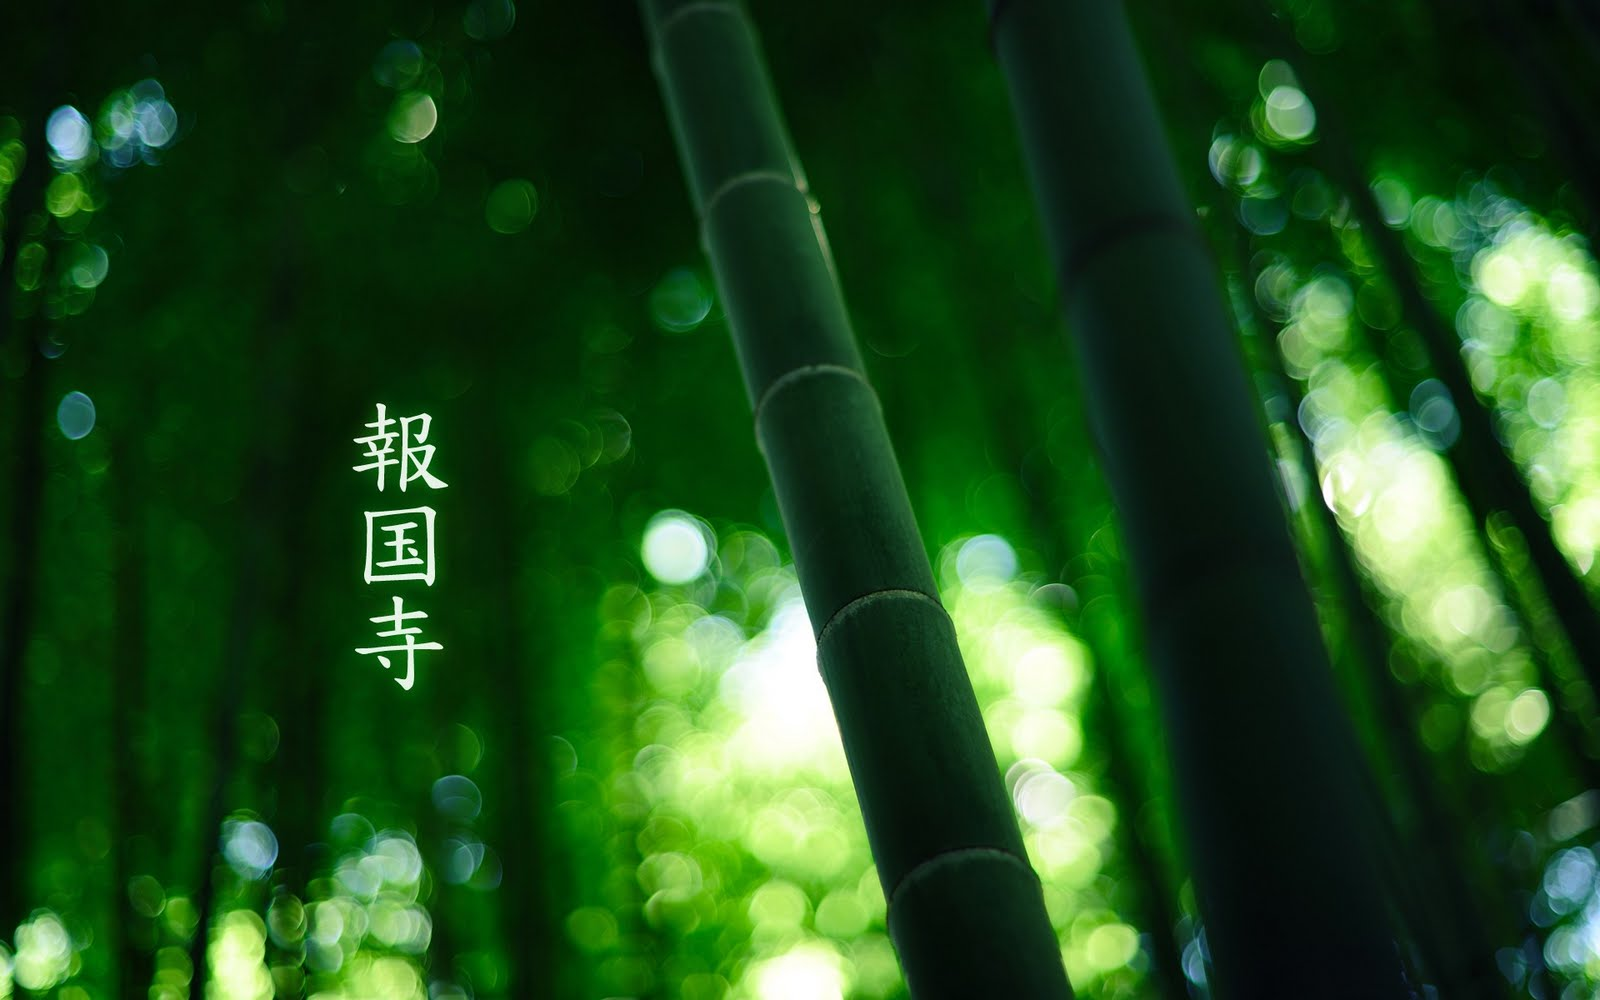 wallpaper bamboo on Posted In Background Bamboo Green Hd Nature Plant Trees Wallpaper